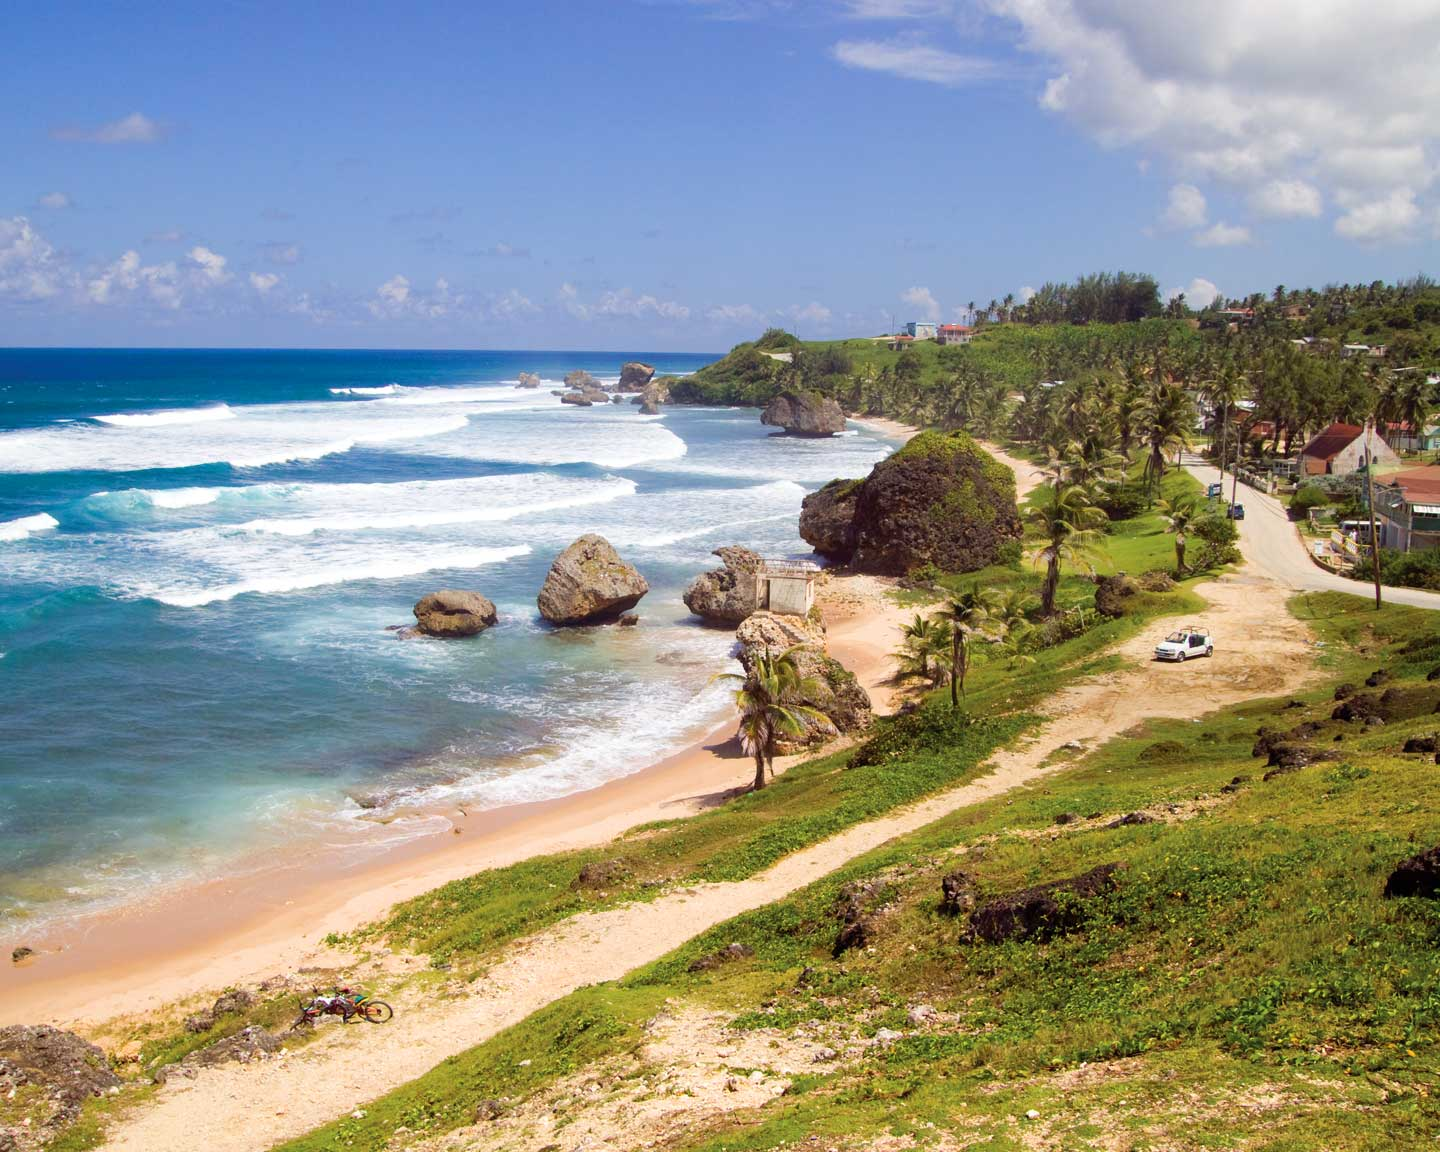 The view of Tent Bay in Bathsheba